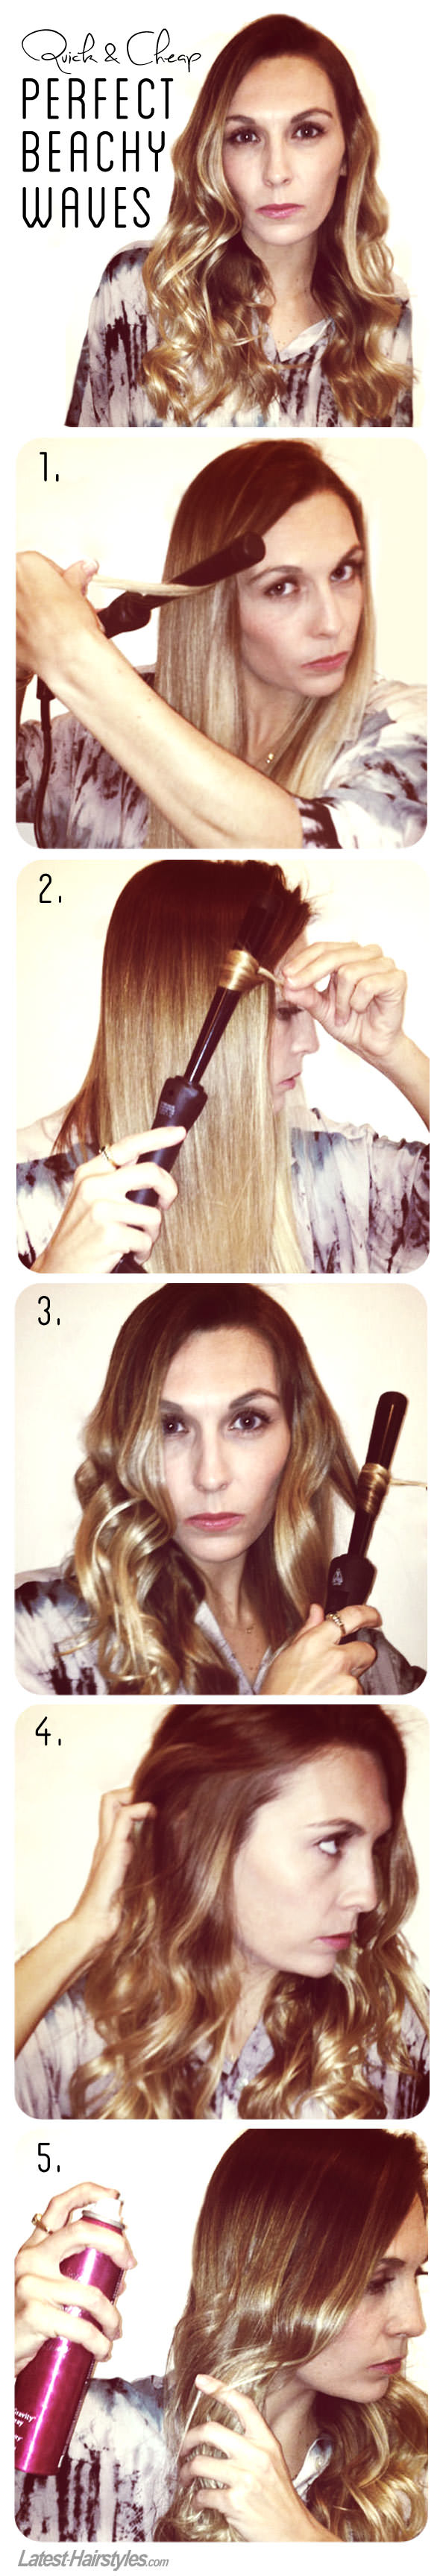 The Secret to Getting Perfect Beachy Waves – The Quick and Cheap Way!